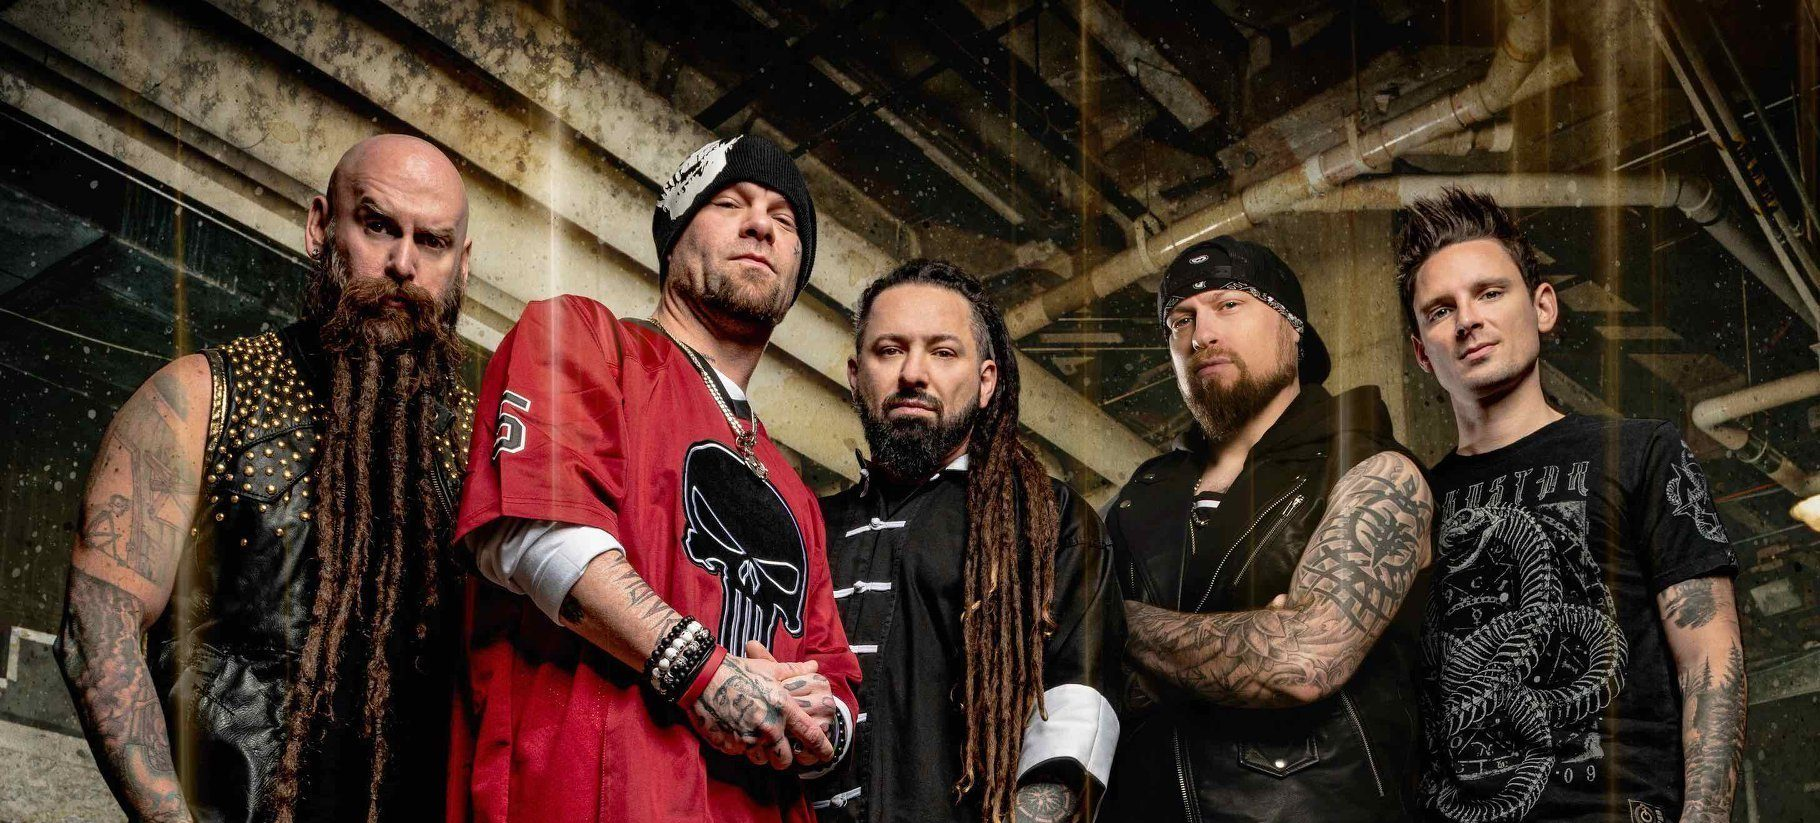 5FDP Band Photo 2020 featuring Chris Kael, Ivan Moody, Zoltan Bathory, Andy James and Charlie Engen